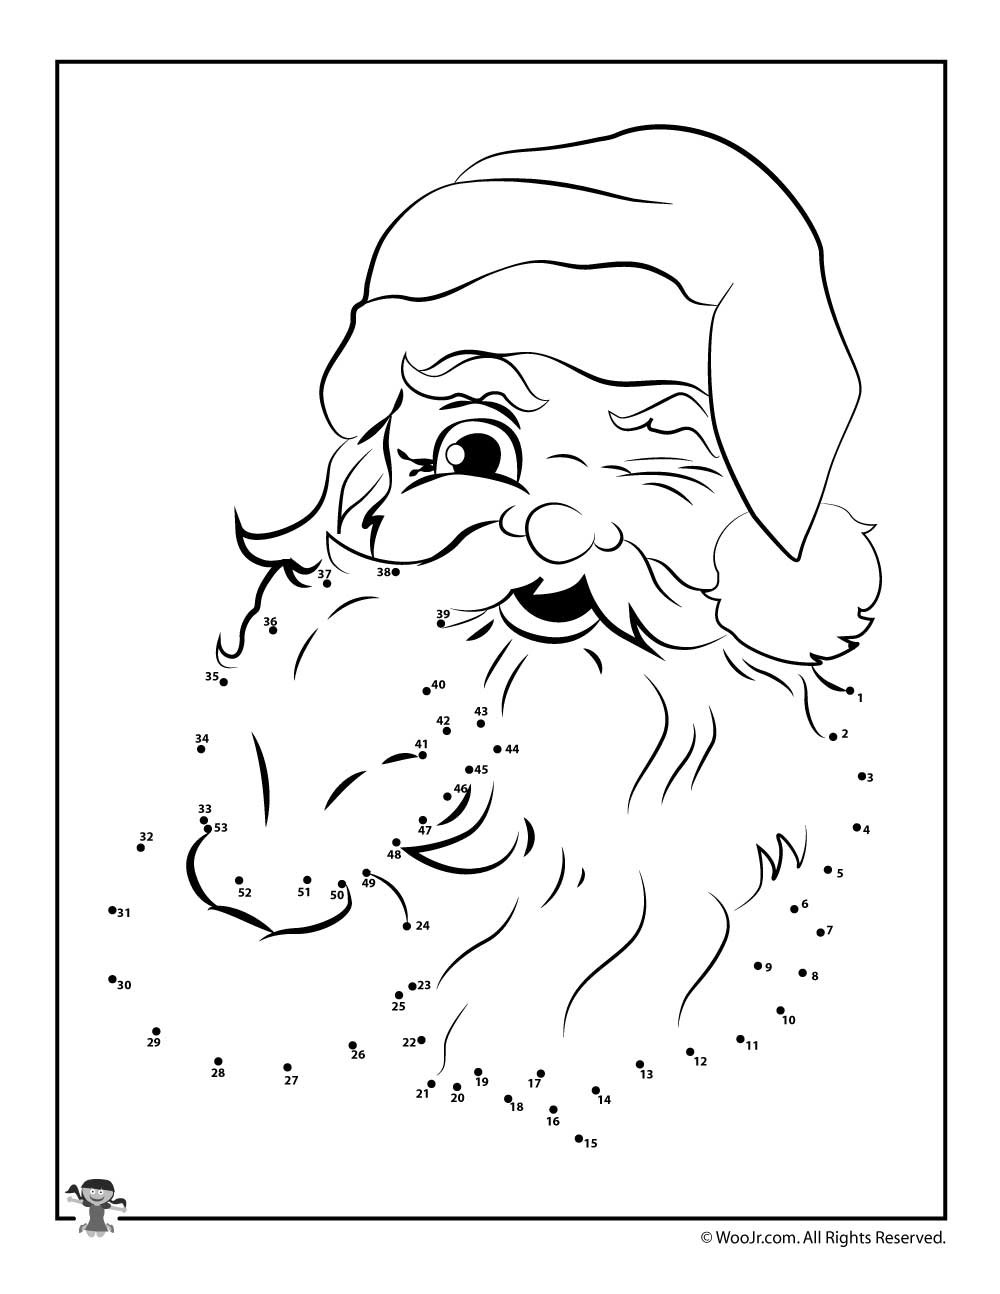 Christmas Connect the Dots Printable Santa Claus Connect the Dots Printable